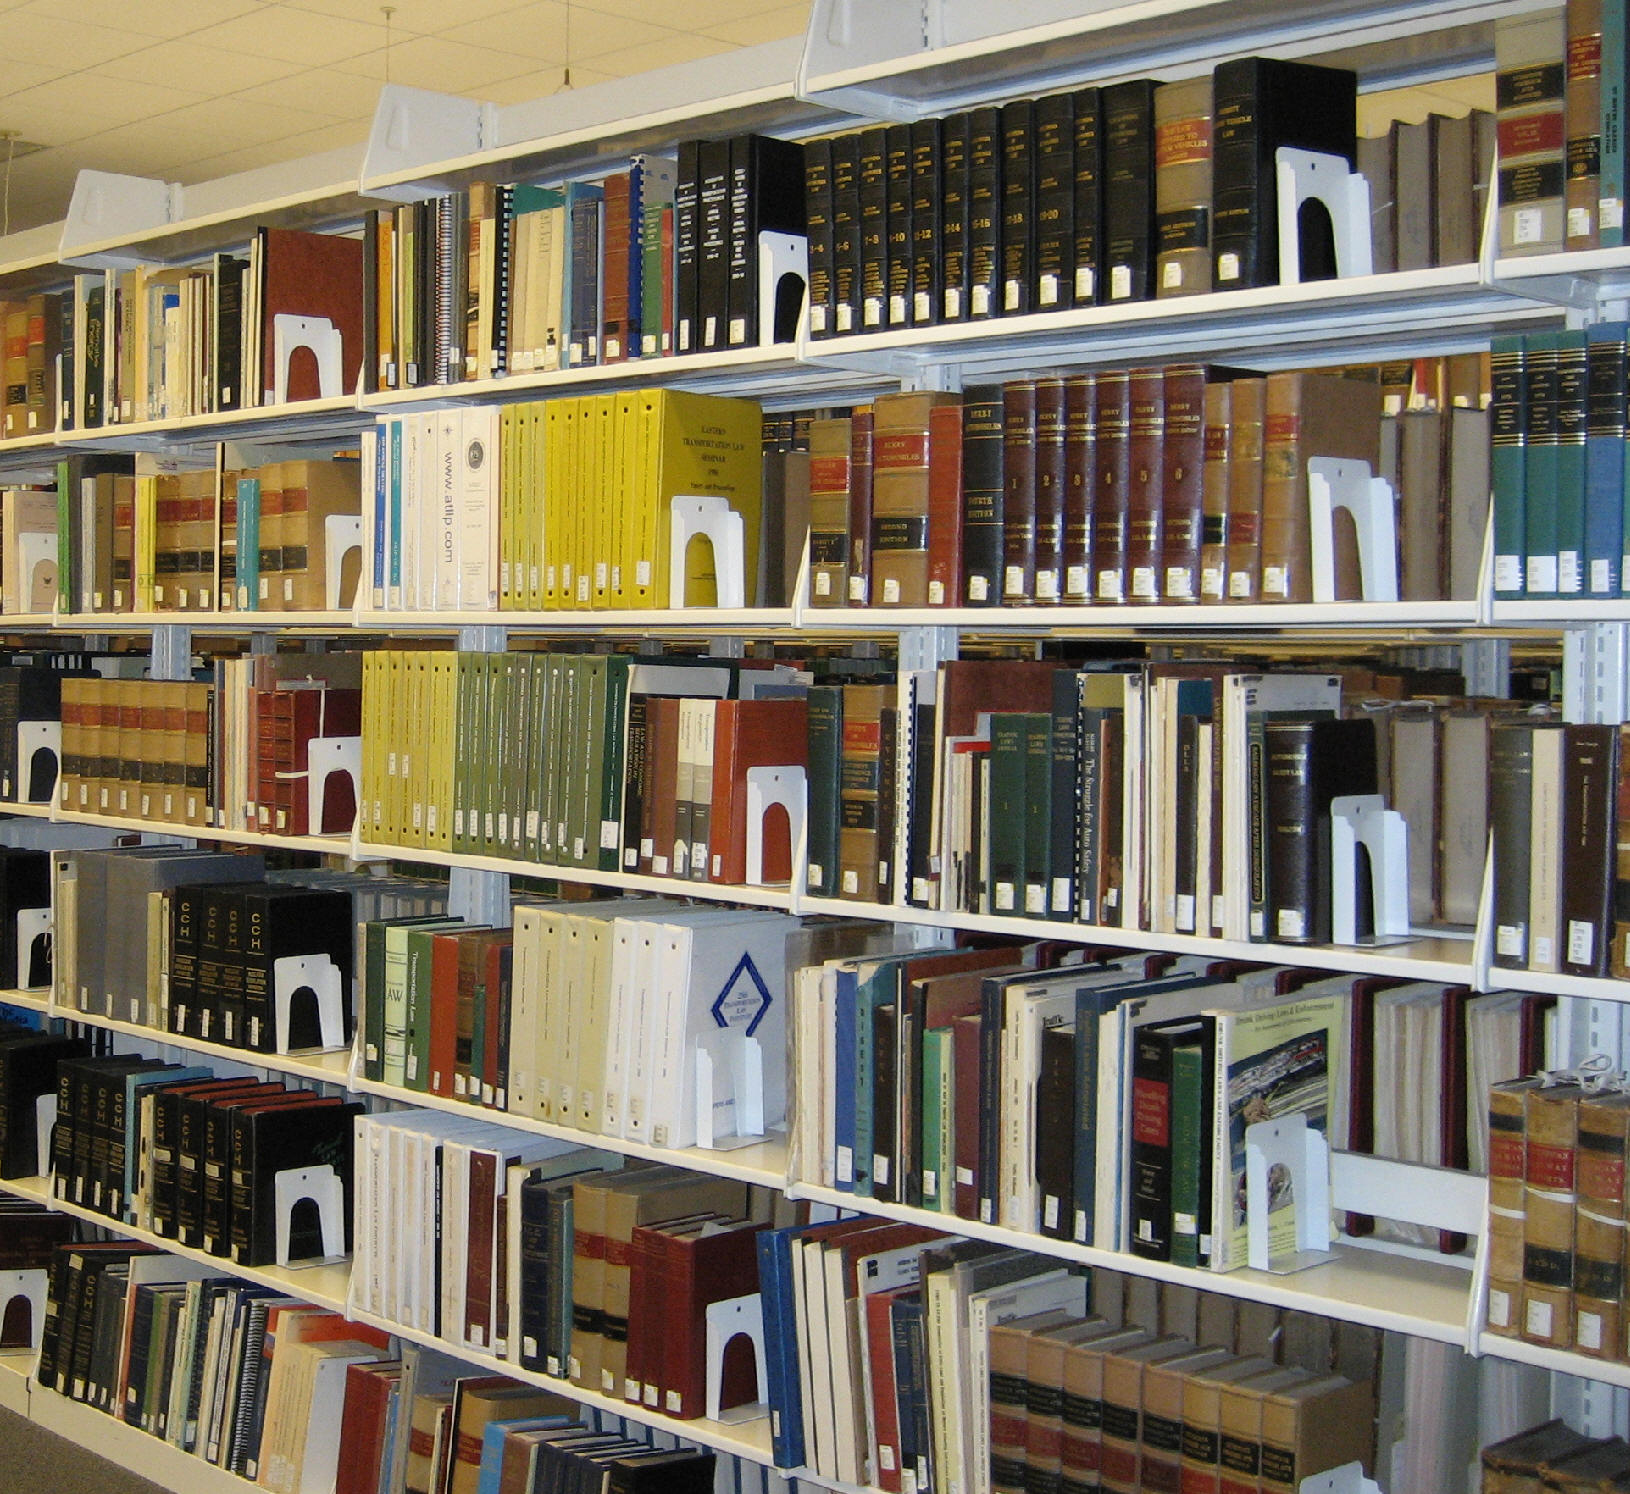 Books in the Gallagher Law Library